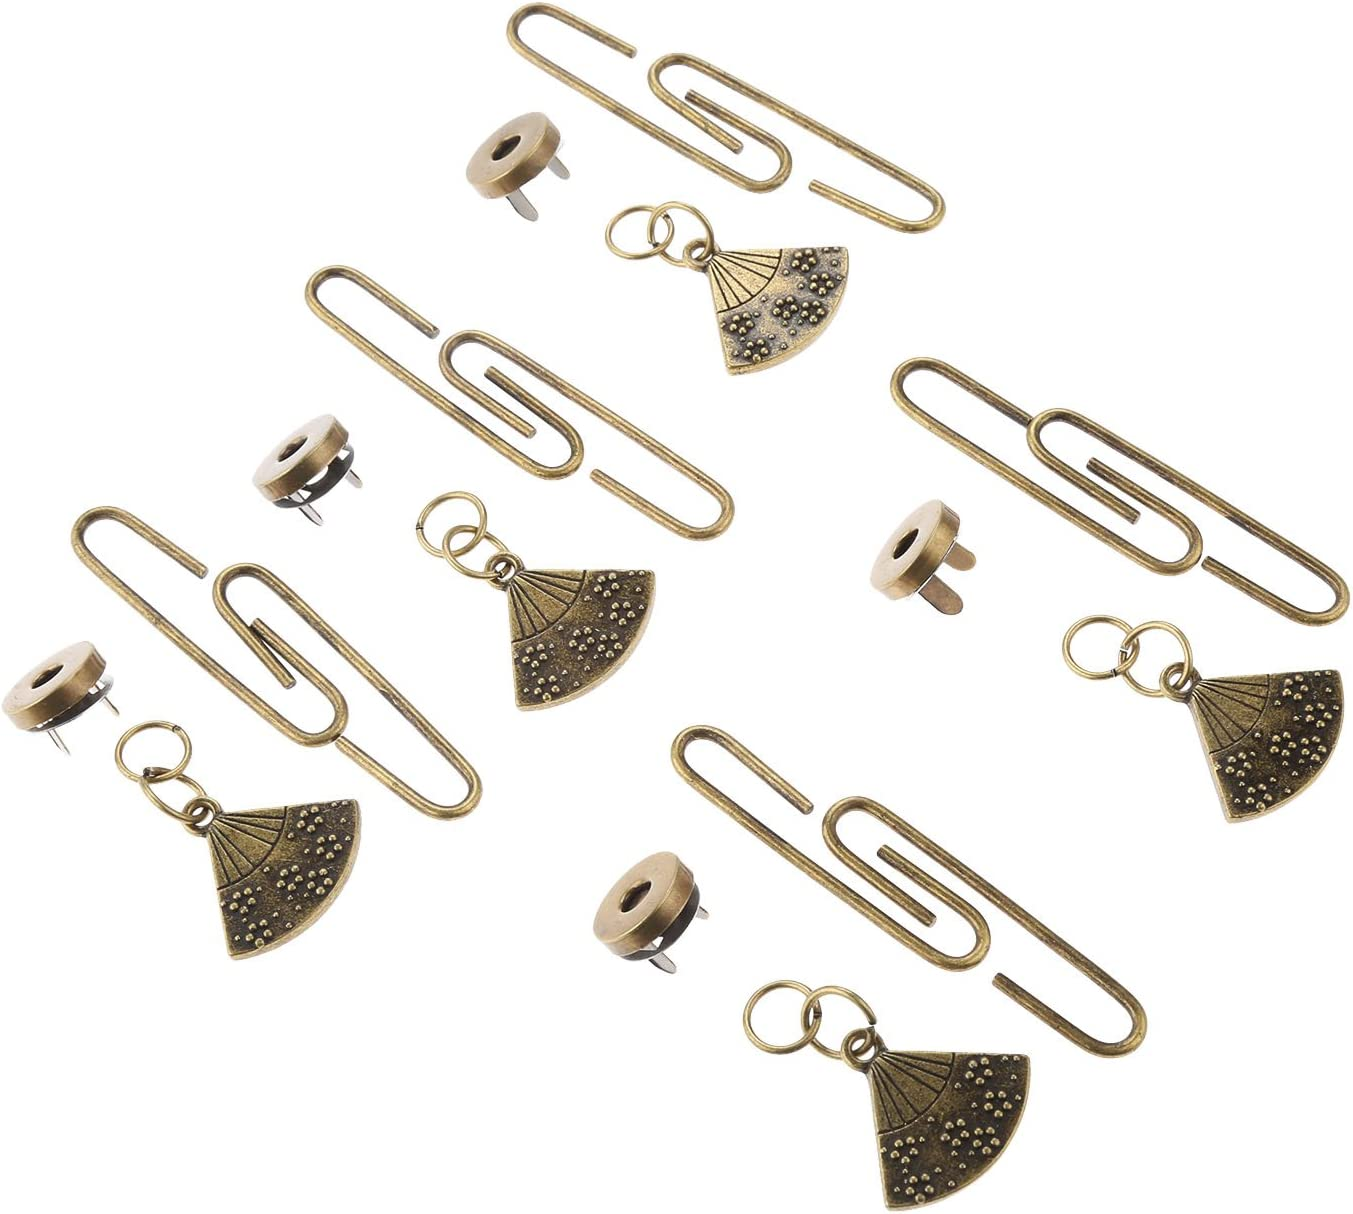 2inch Purse Clasps C-Shaped Frame Clutch Star Moon kiss Clasp Lock Magnetic Snap Buckle and Charms Pendants Craft Accessory Silver 5Pcs